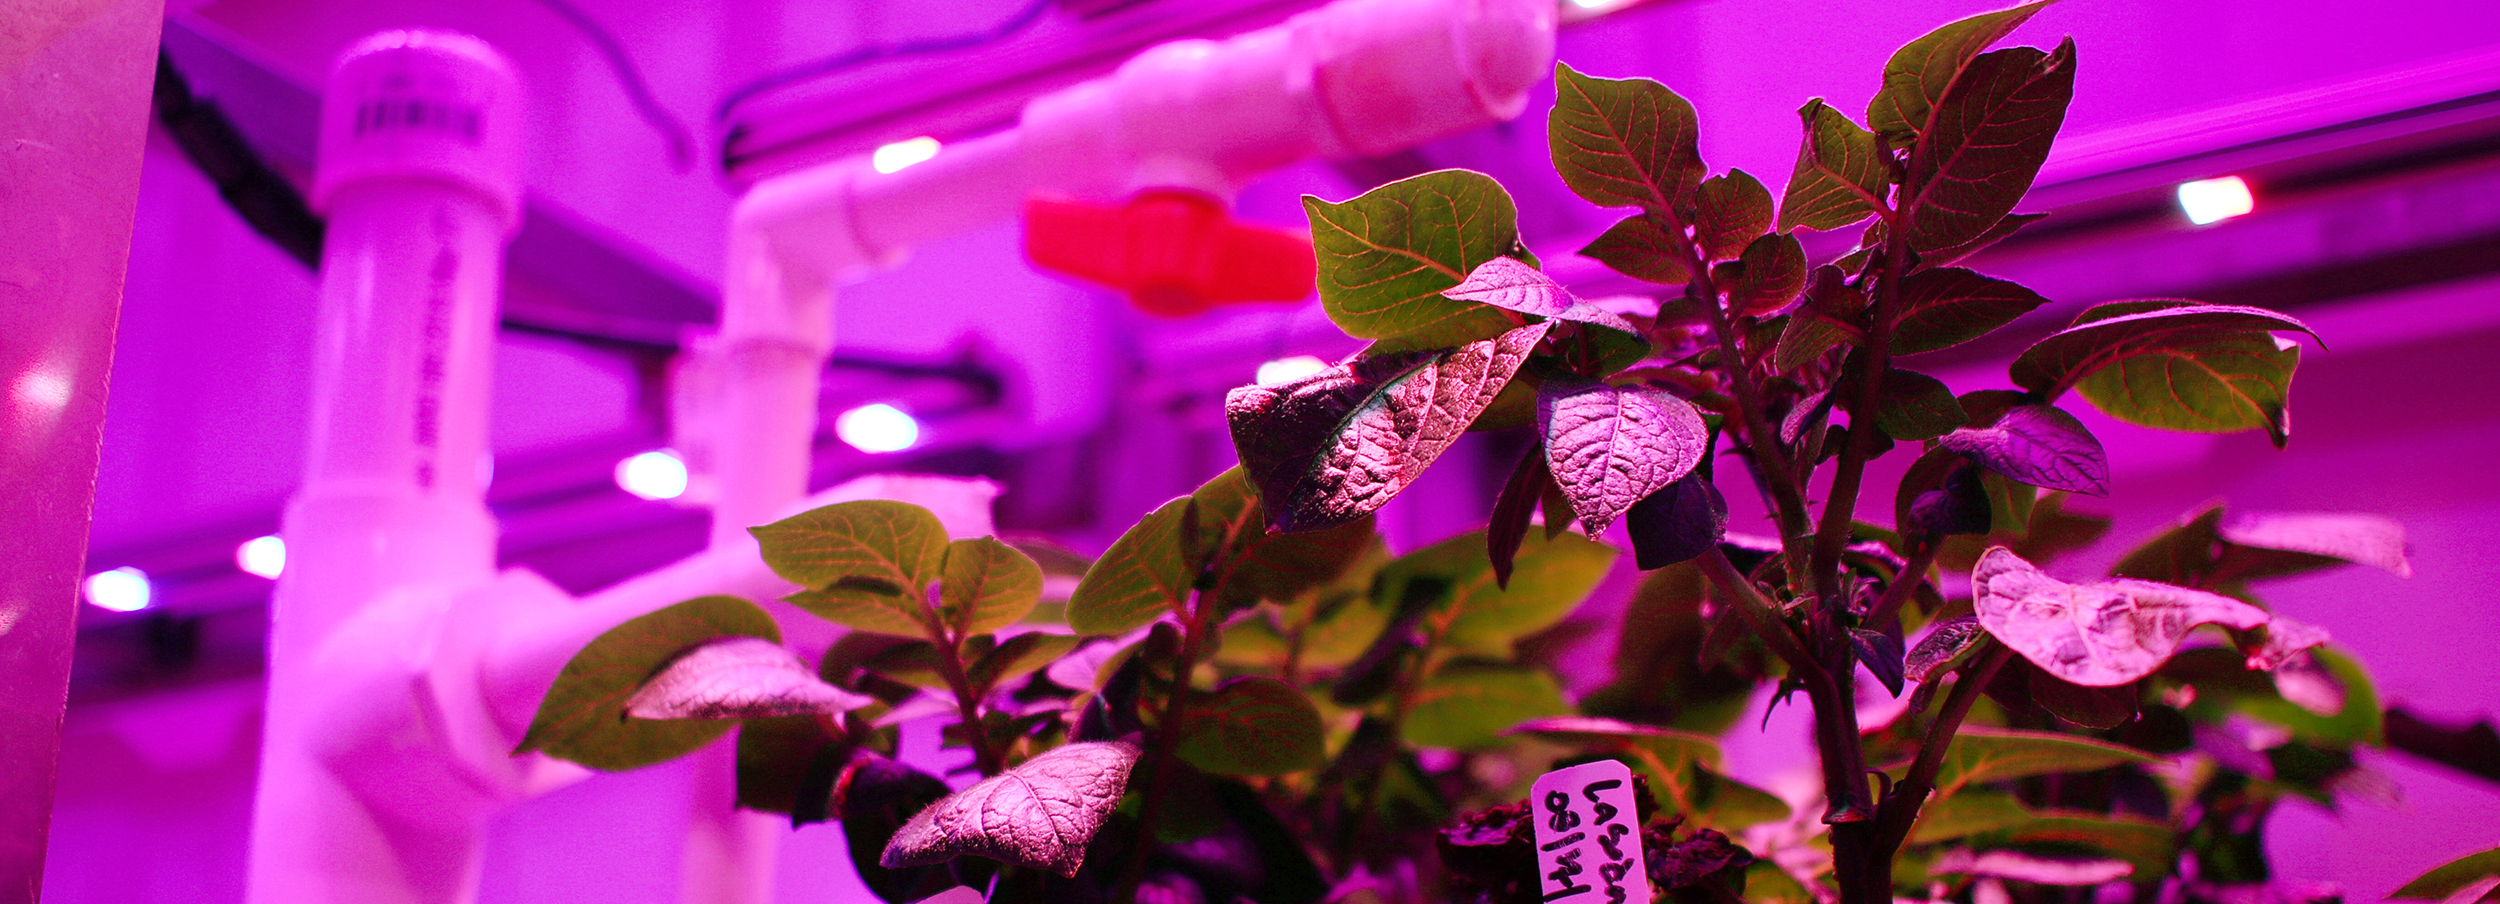 virology-potato-plants-in-growtainer.jpg